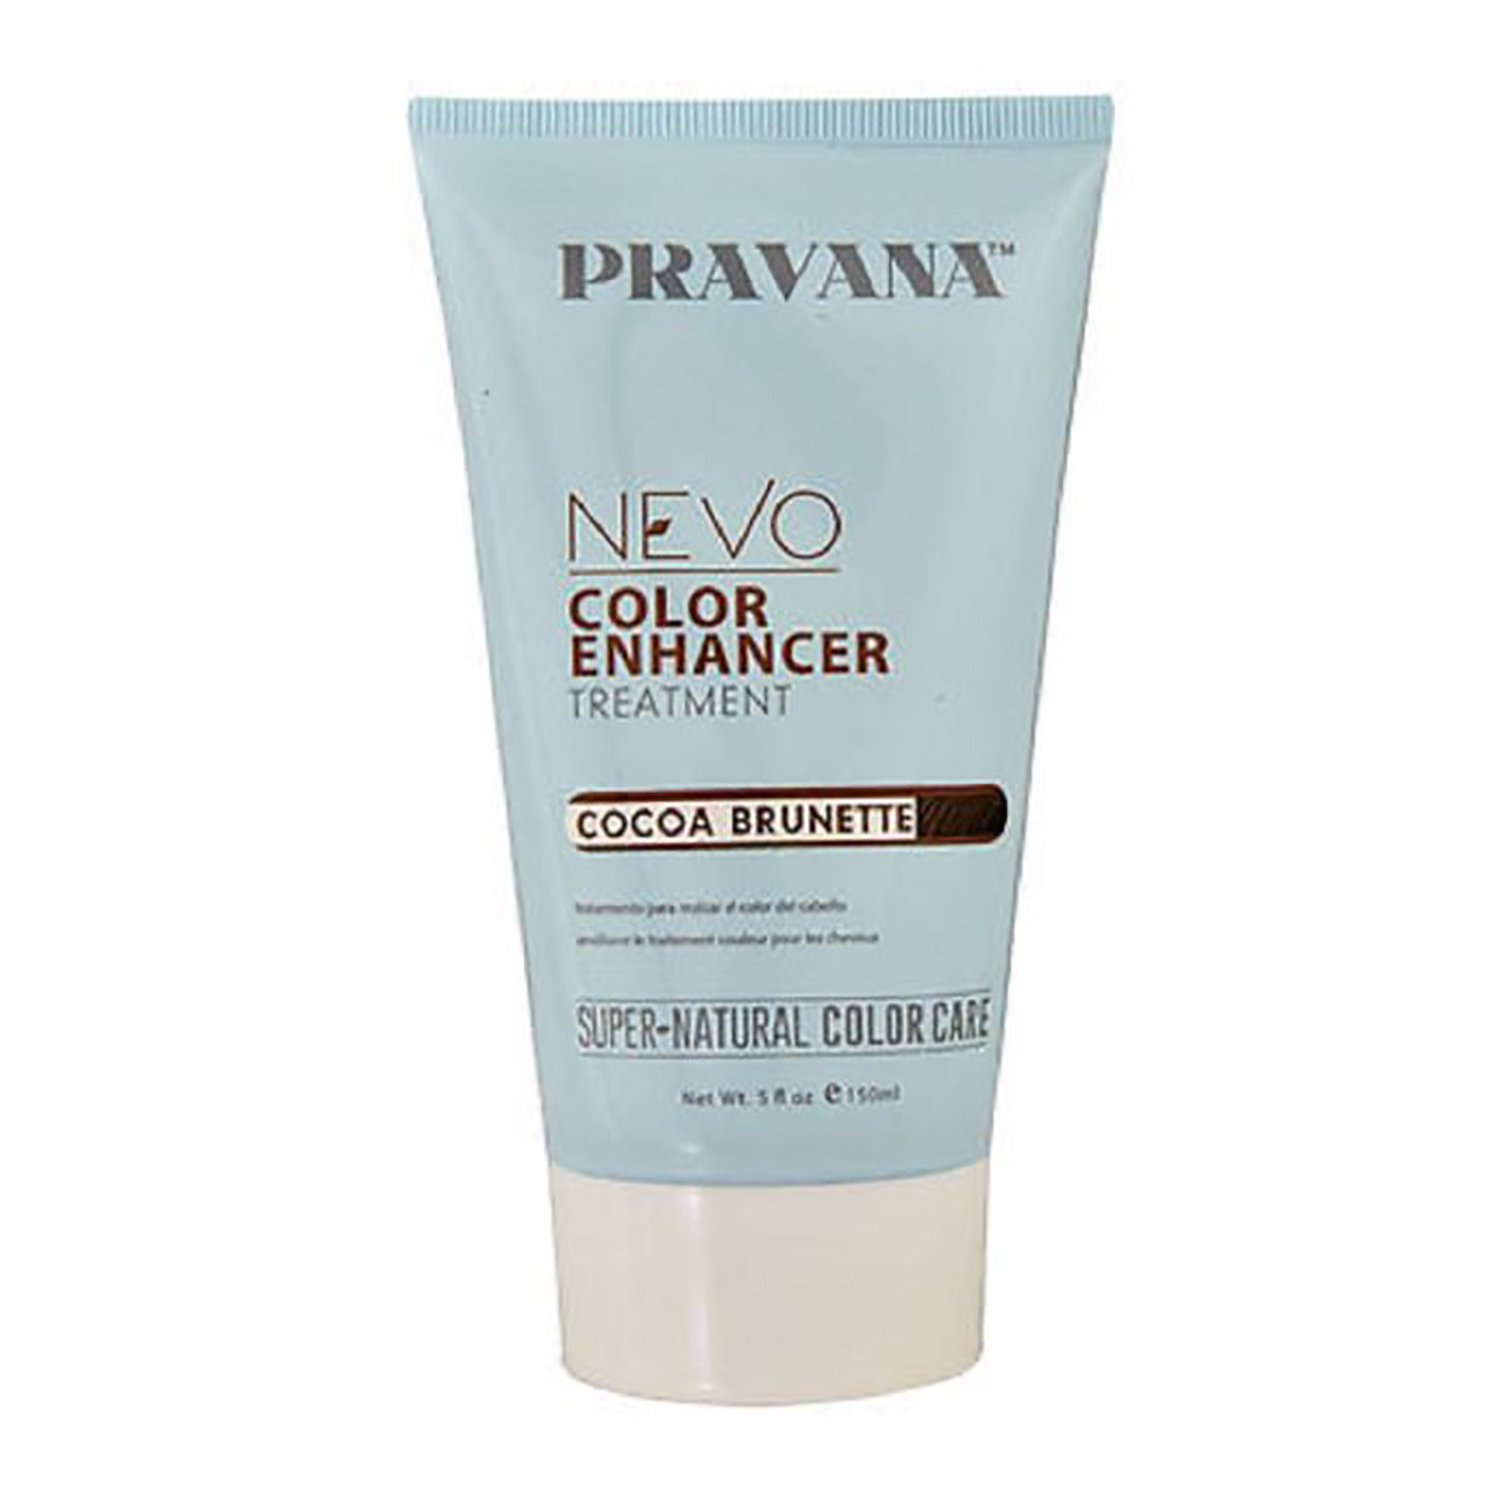 pravana nevo color enhancer cocoa brunette